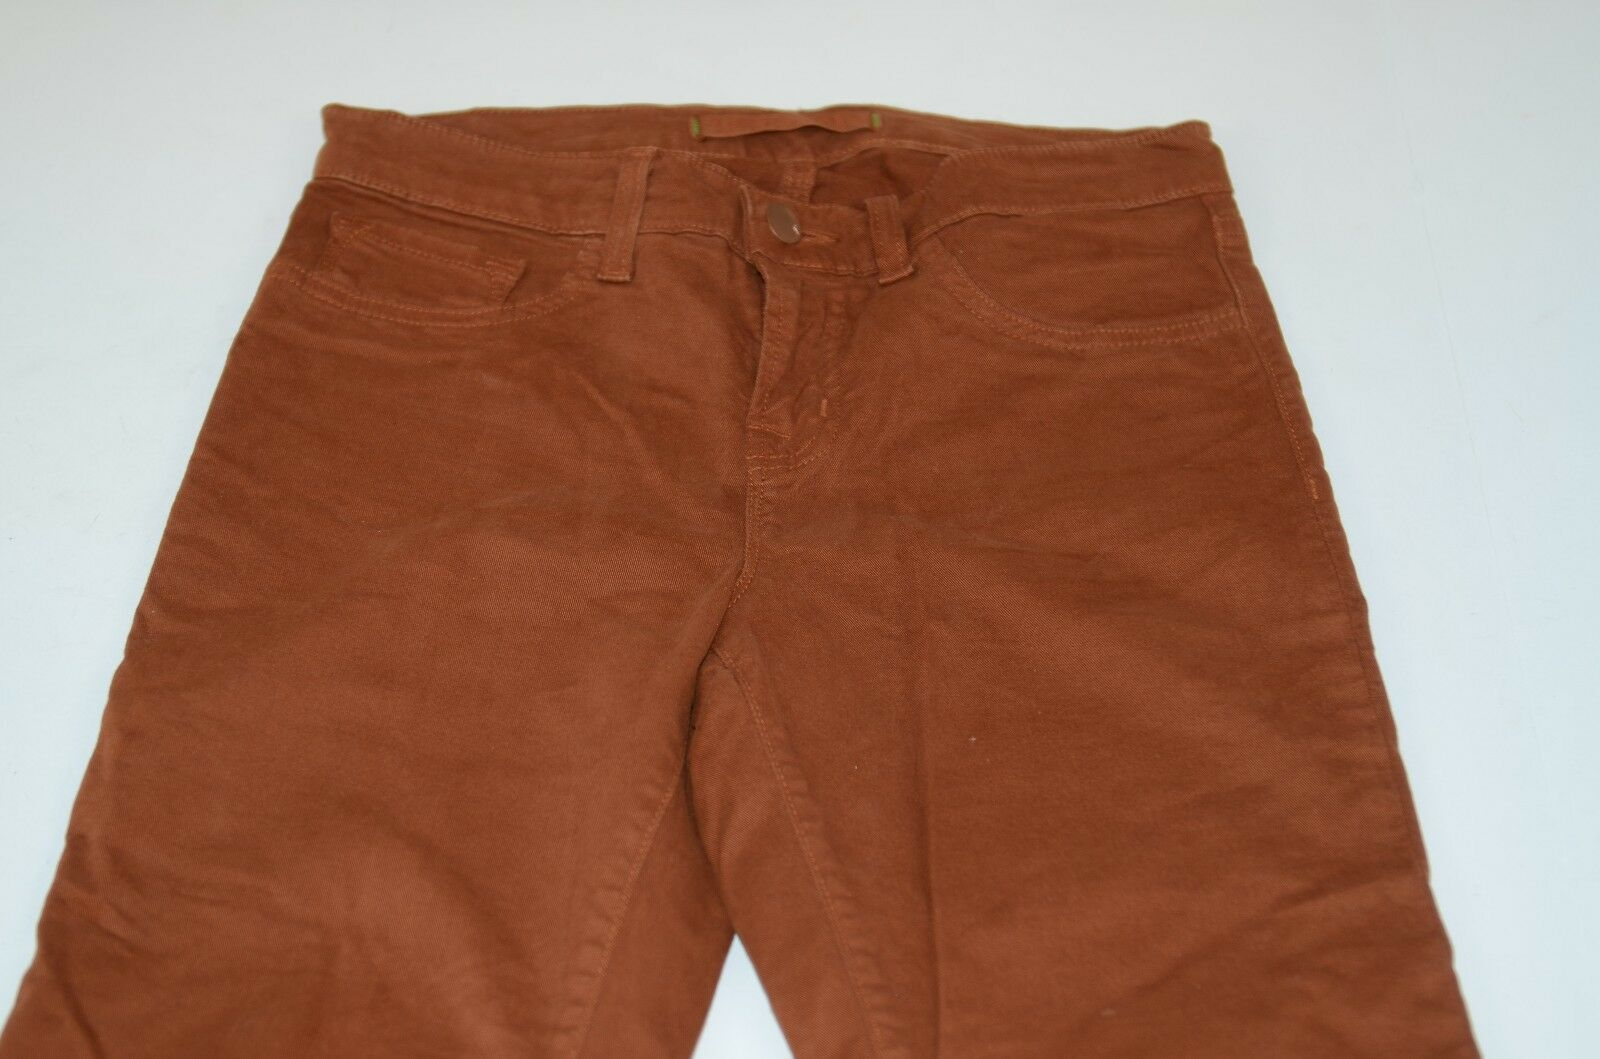 J Brand Women's Skinny Pants Size 26 Teyra Cotton Ski Burnt orange Sz 2 Casual